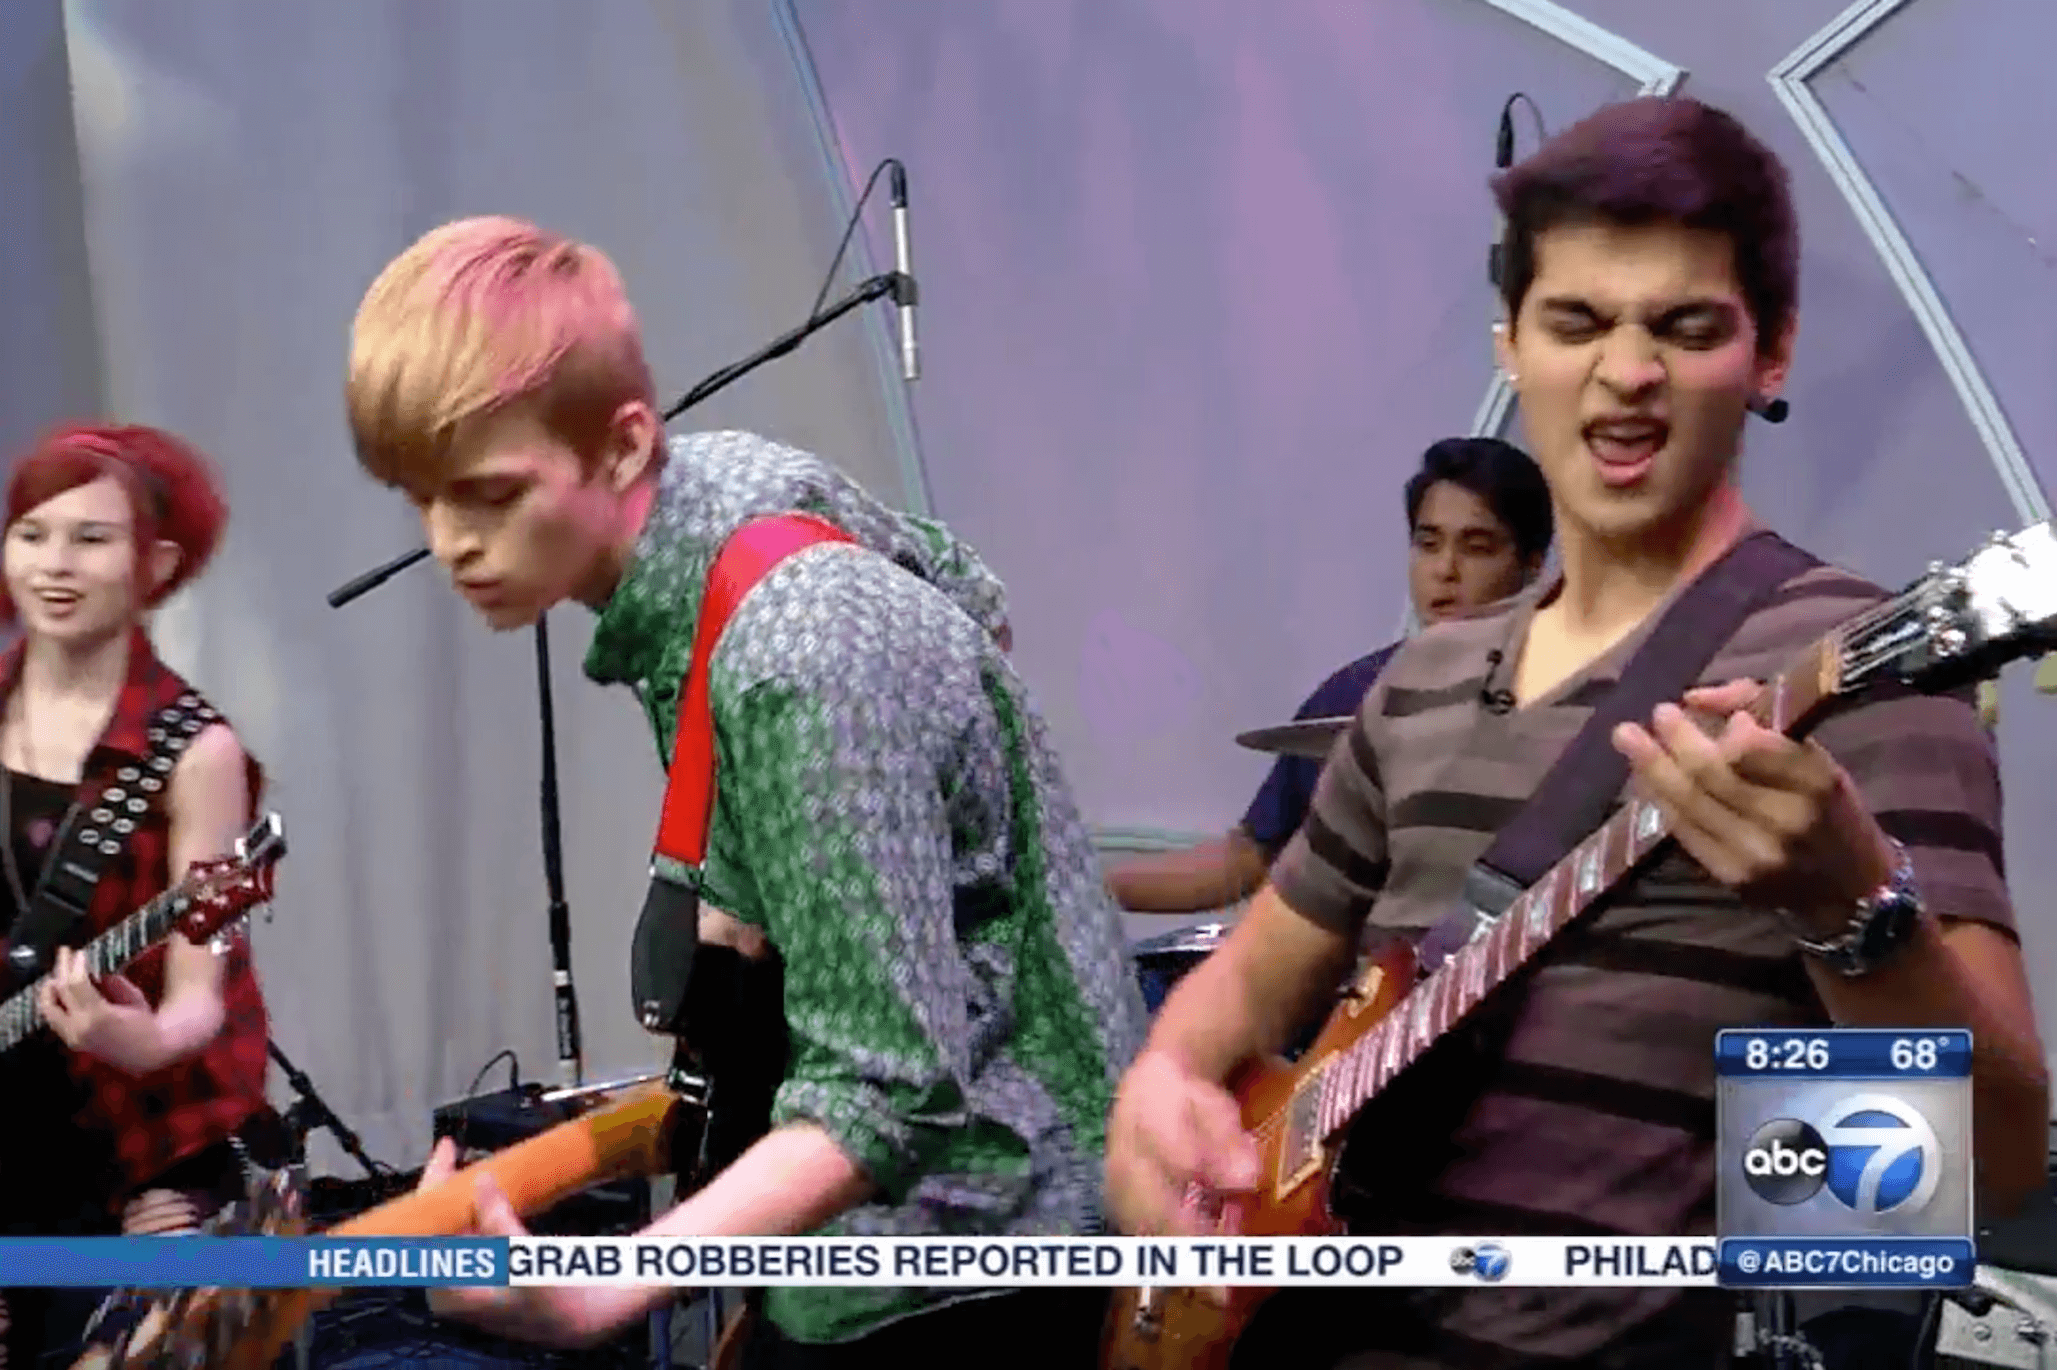 School of Rock Chicago students show ABC News Chicago their skills